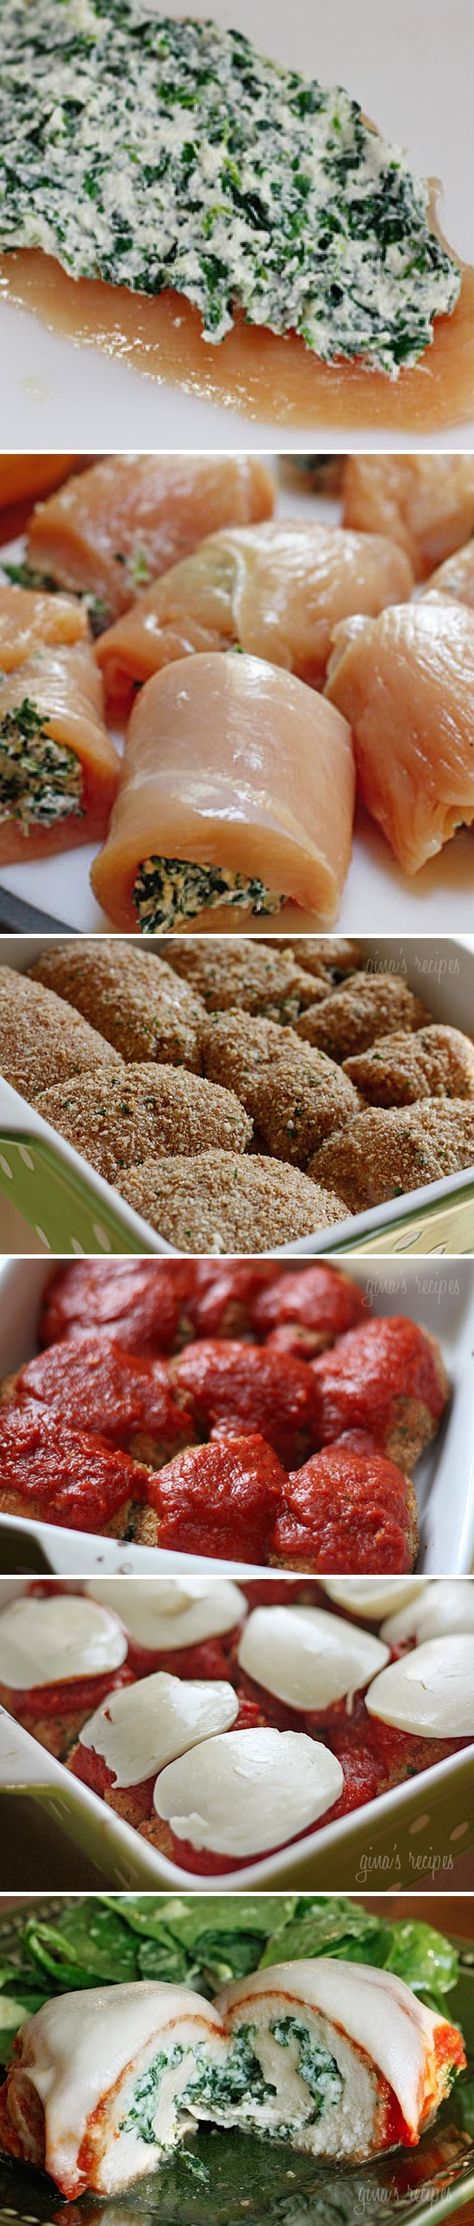 Chicken Rollatini ~ chicken stuffed with spinach and a yummy cheese mixture then coat them with bread crumbs and top them with more cheese... delish! link to recipe on page